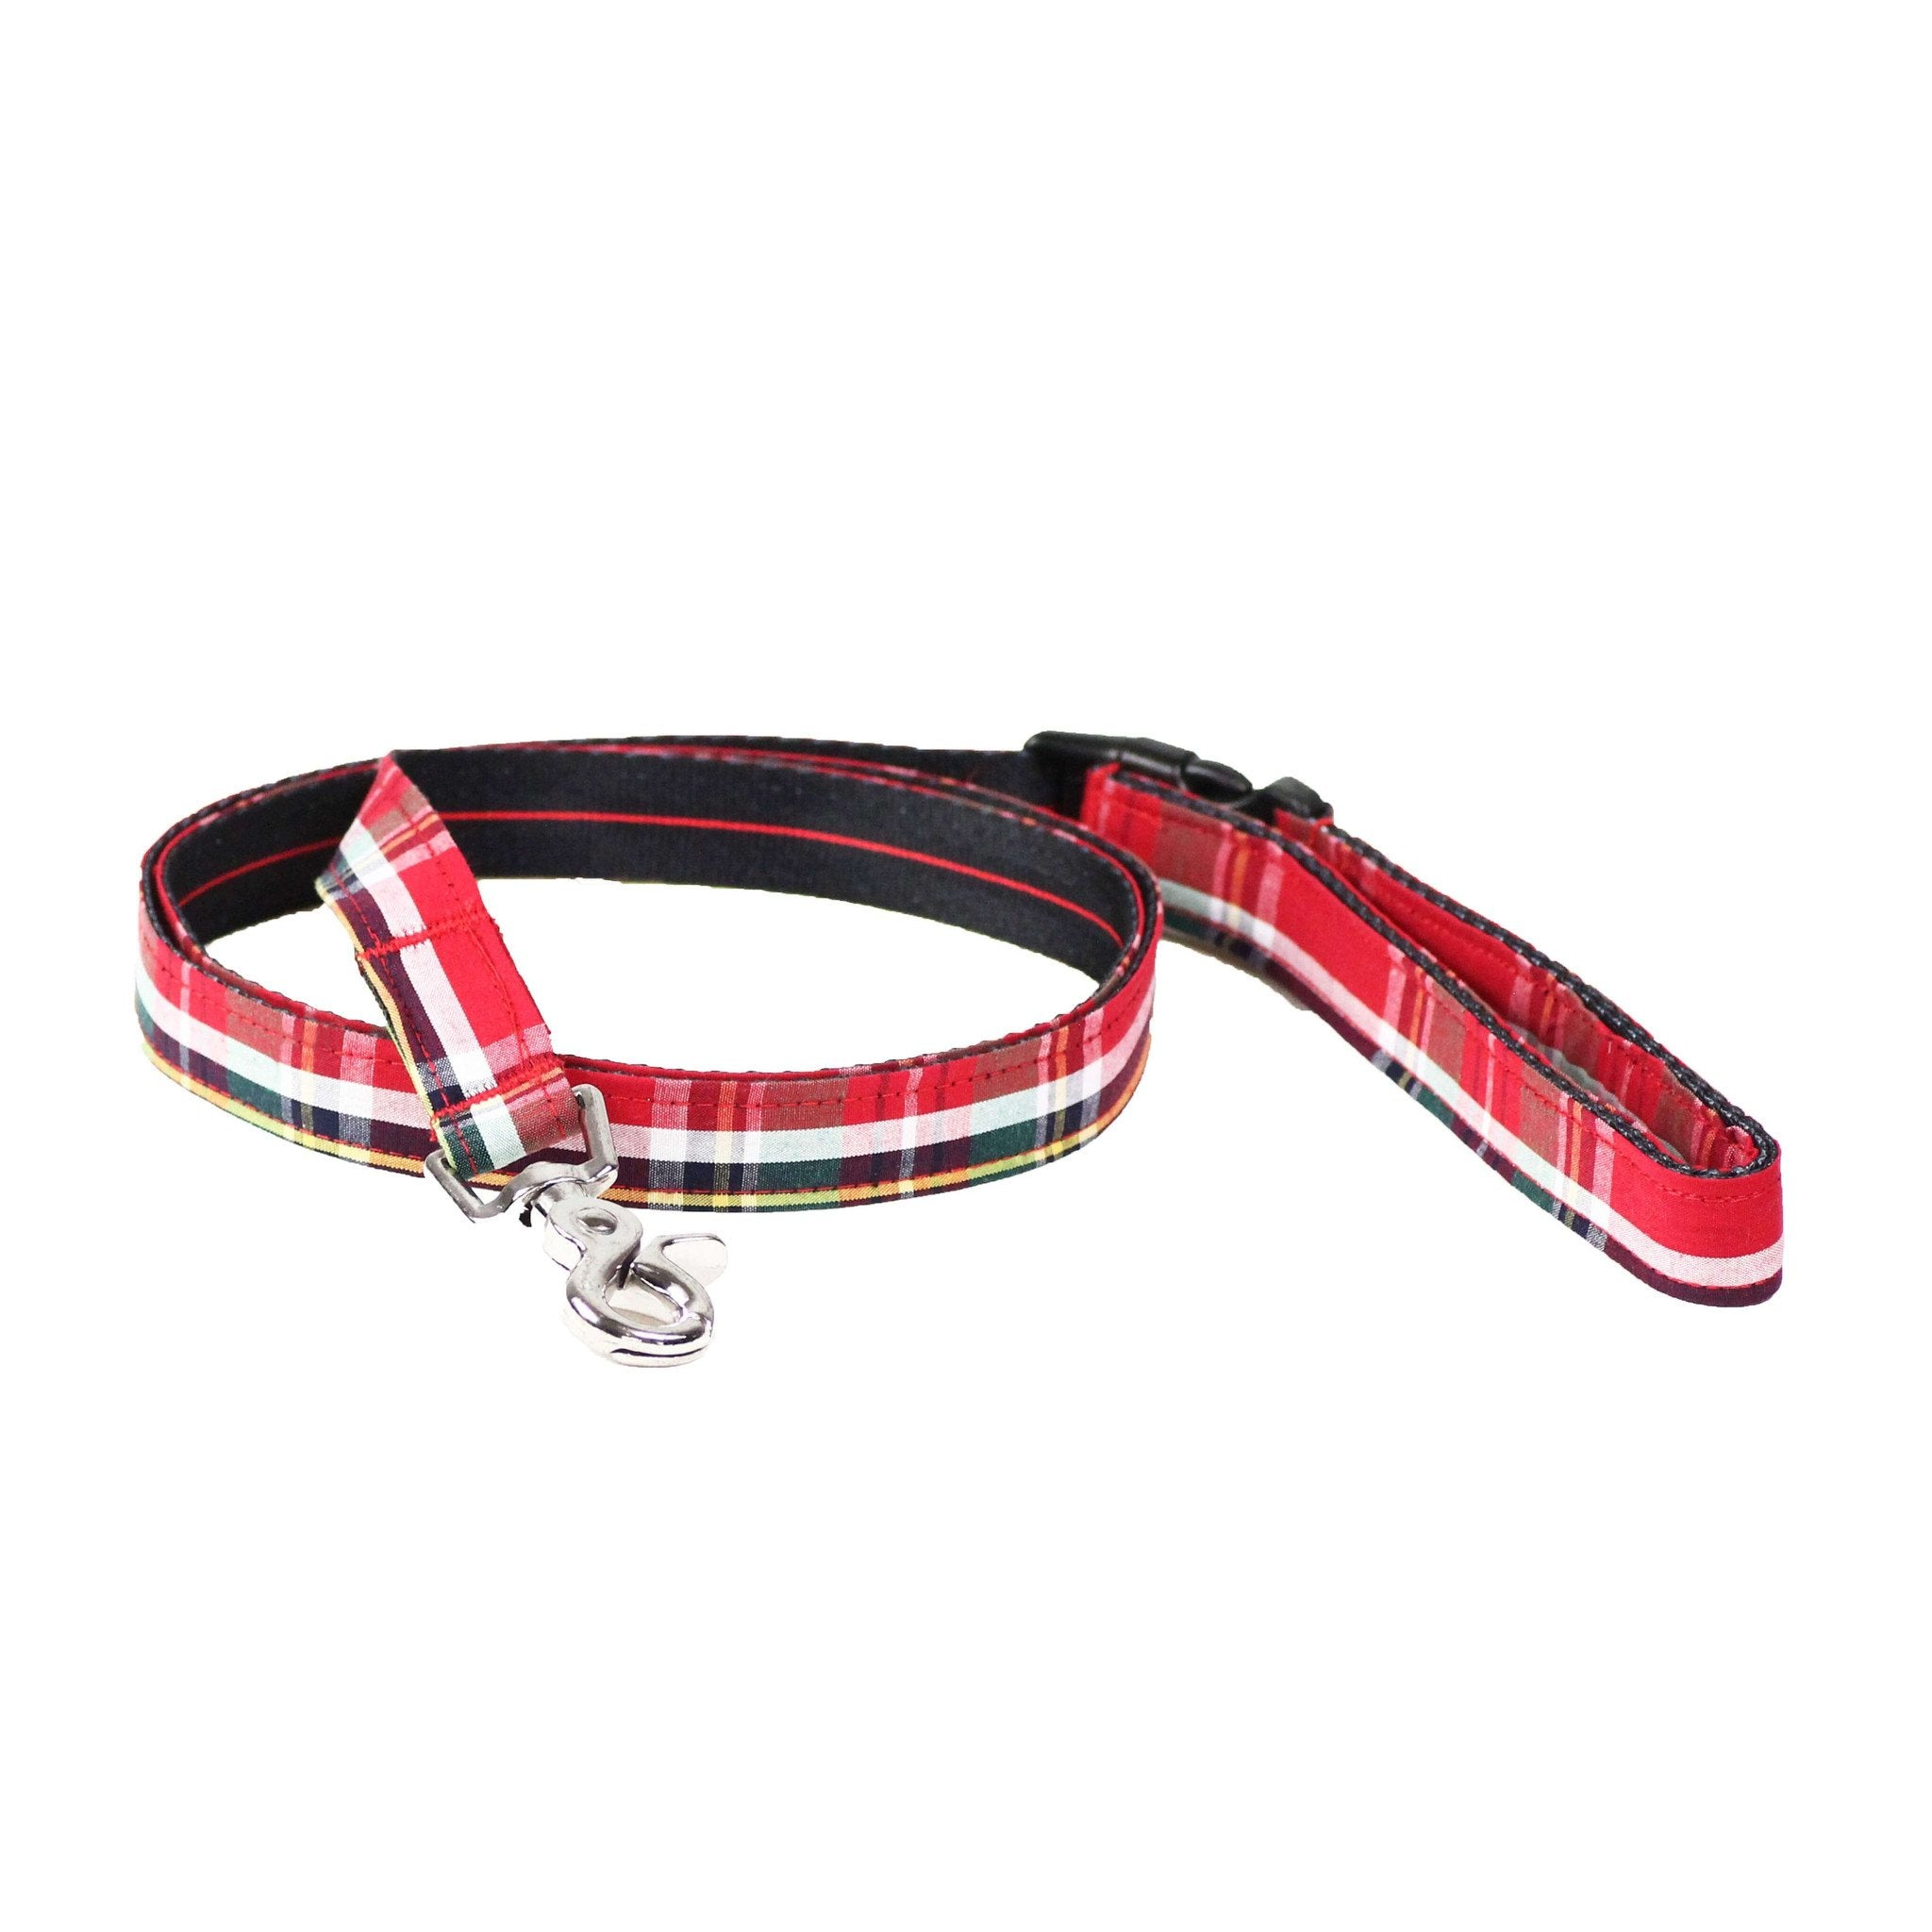 Copy of Dog Leash : Scottish Tartan - Dharf - 1